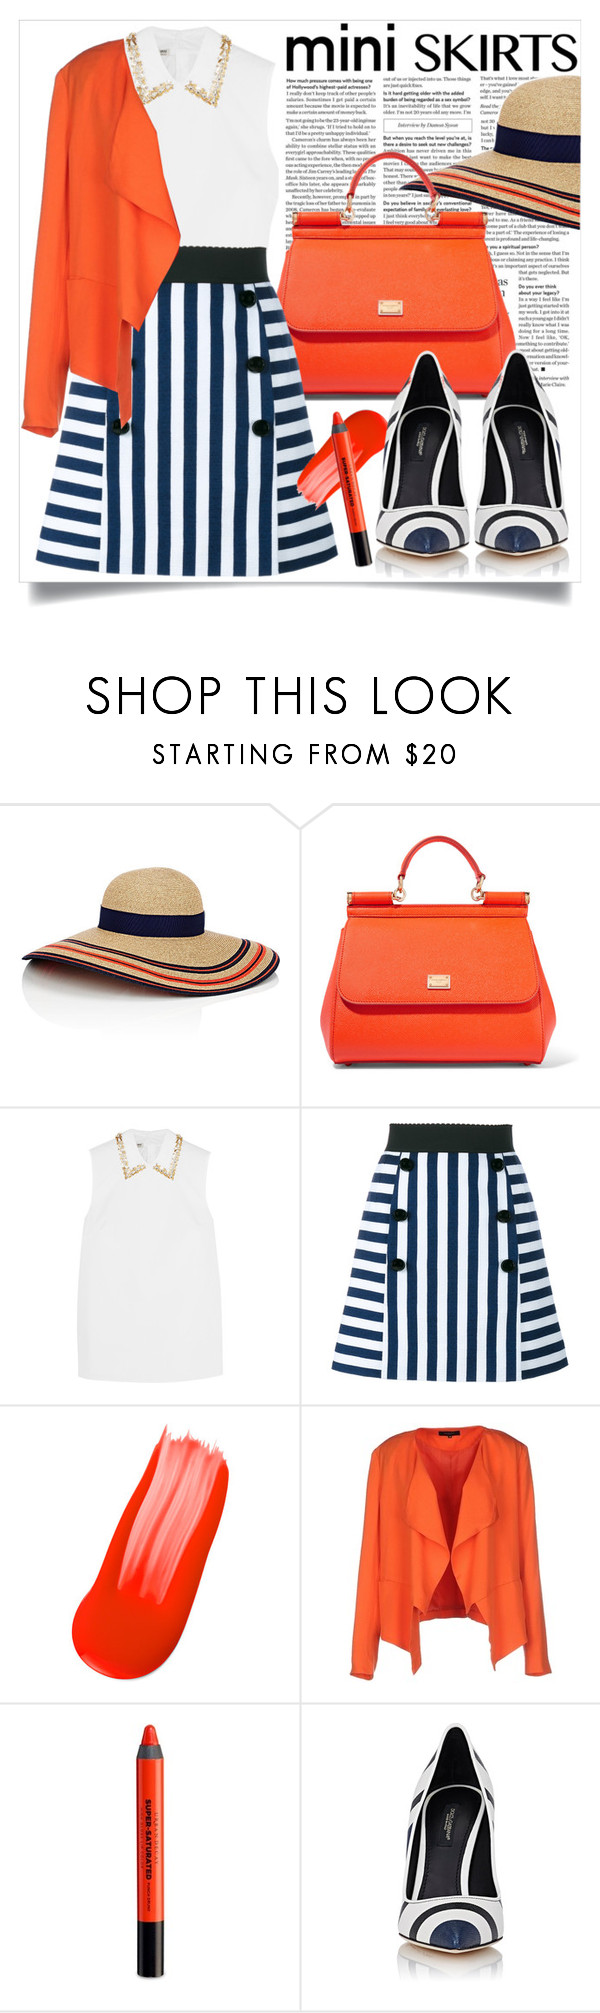 """""""Mini skirts"""" by ailav9 ❤ liked on Polyvore featuring Eugenia Kim, Dolce&Gabbana, Miu Miu, SELECTED and Urban Decay"""